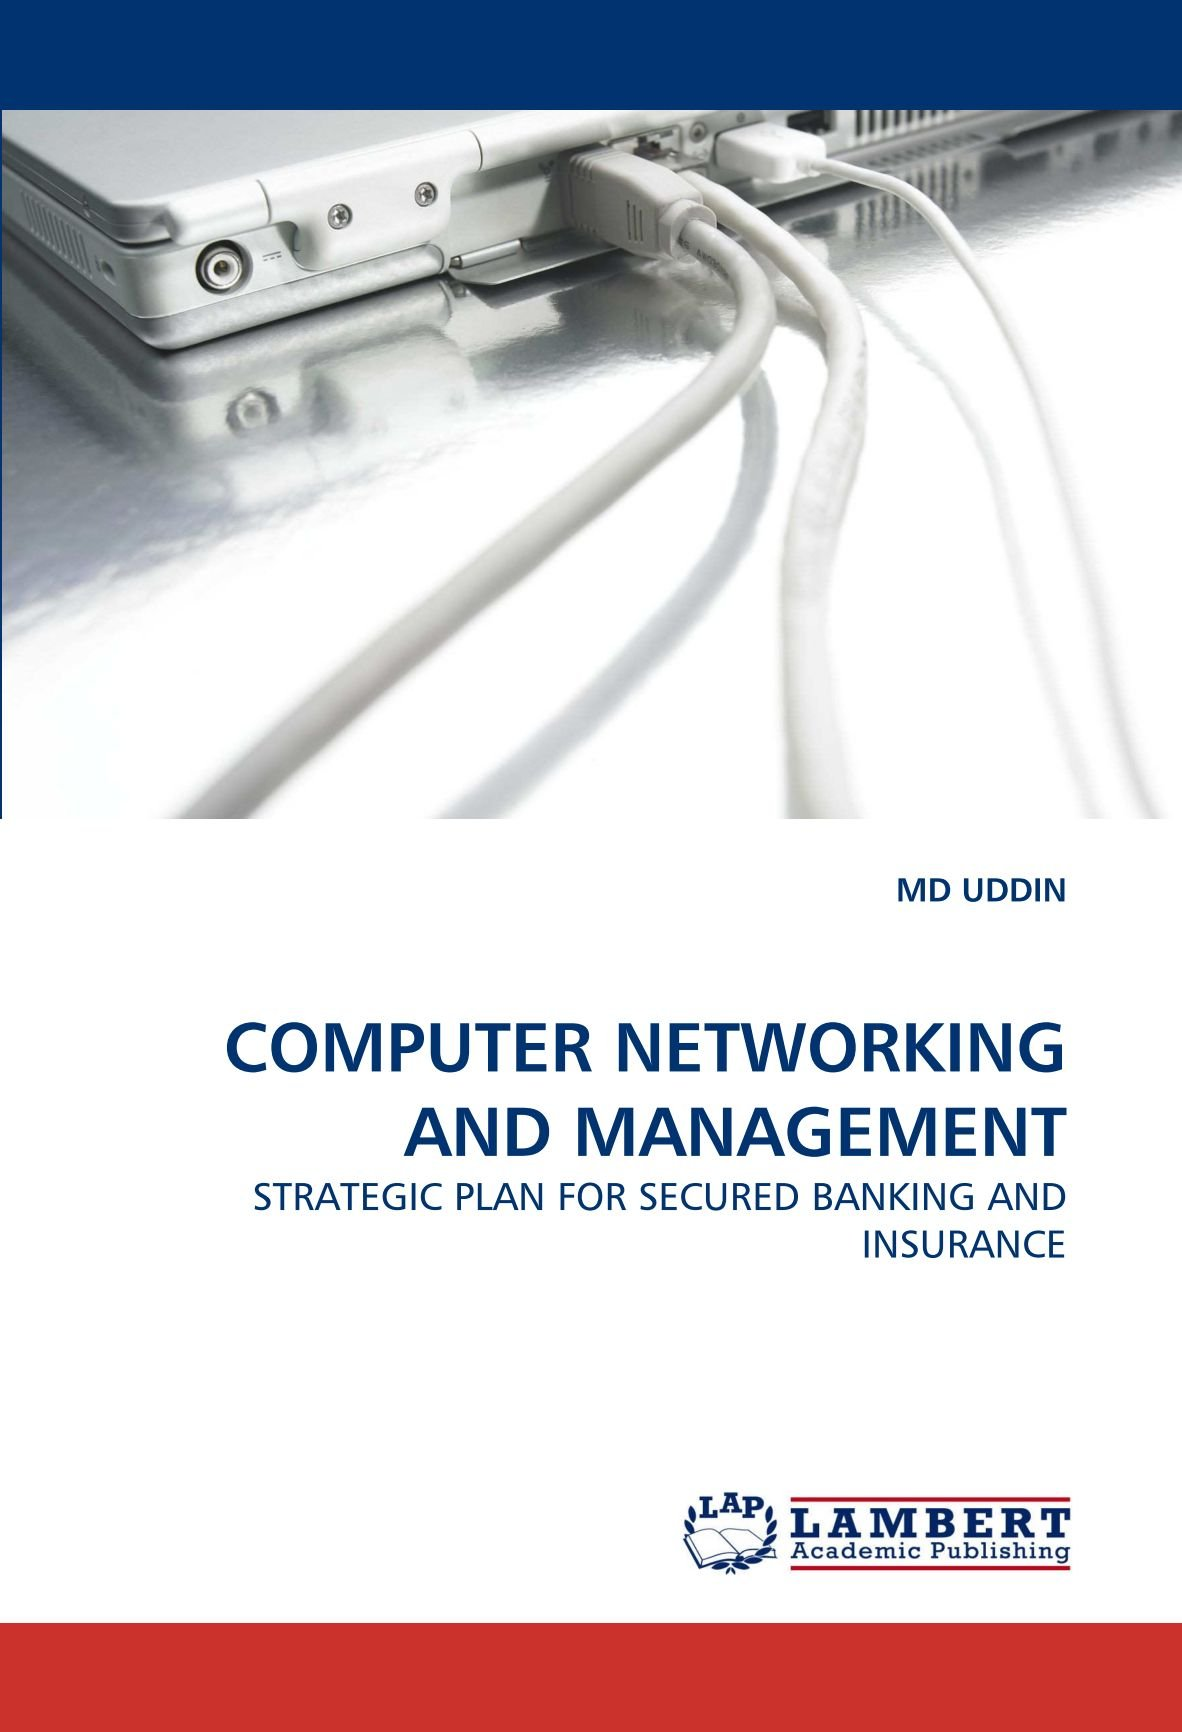 Read Online COMPUTER NETWORKING AND MANAGEMENT: STRATEGIC PLAN FOR SECURED BANKING AND INSURANCE pdf